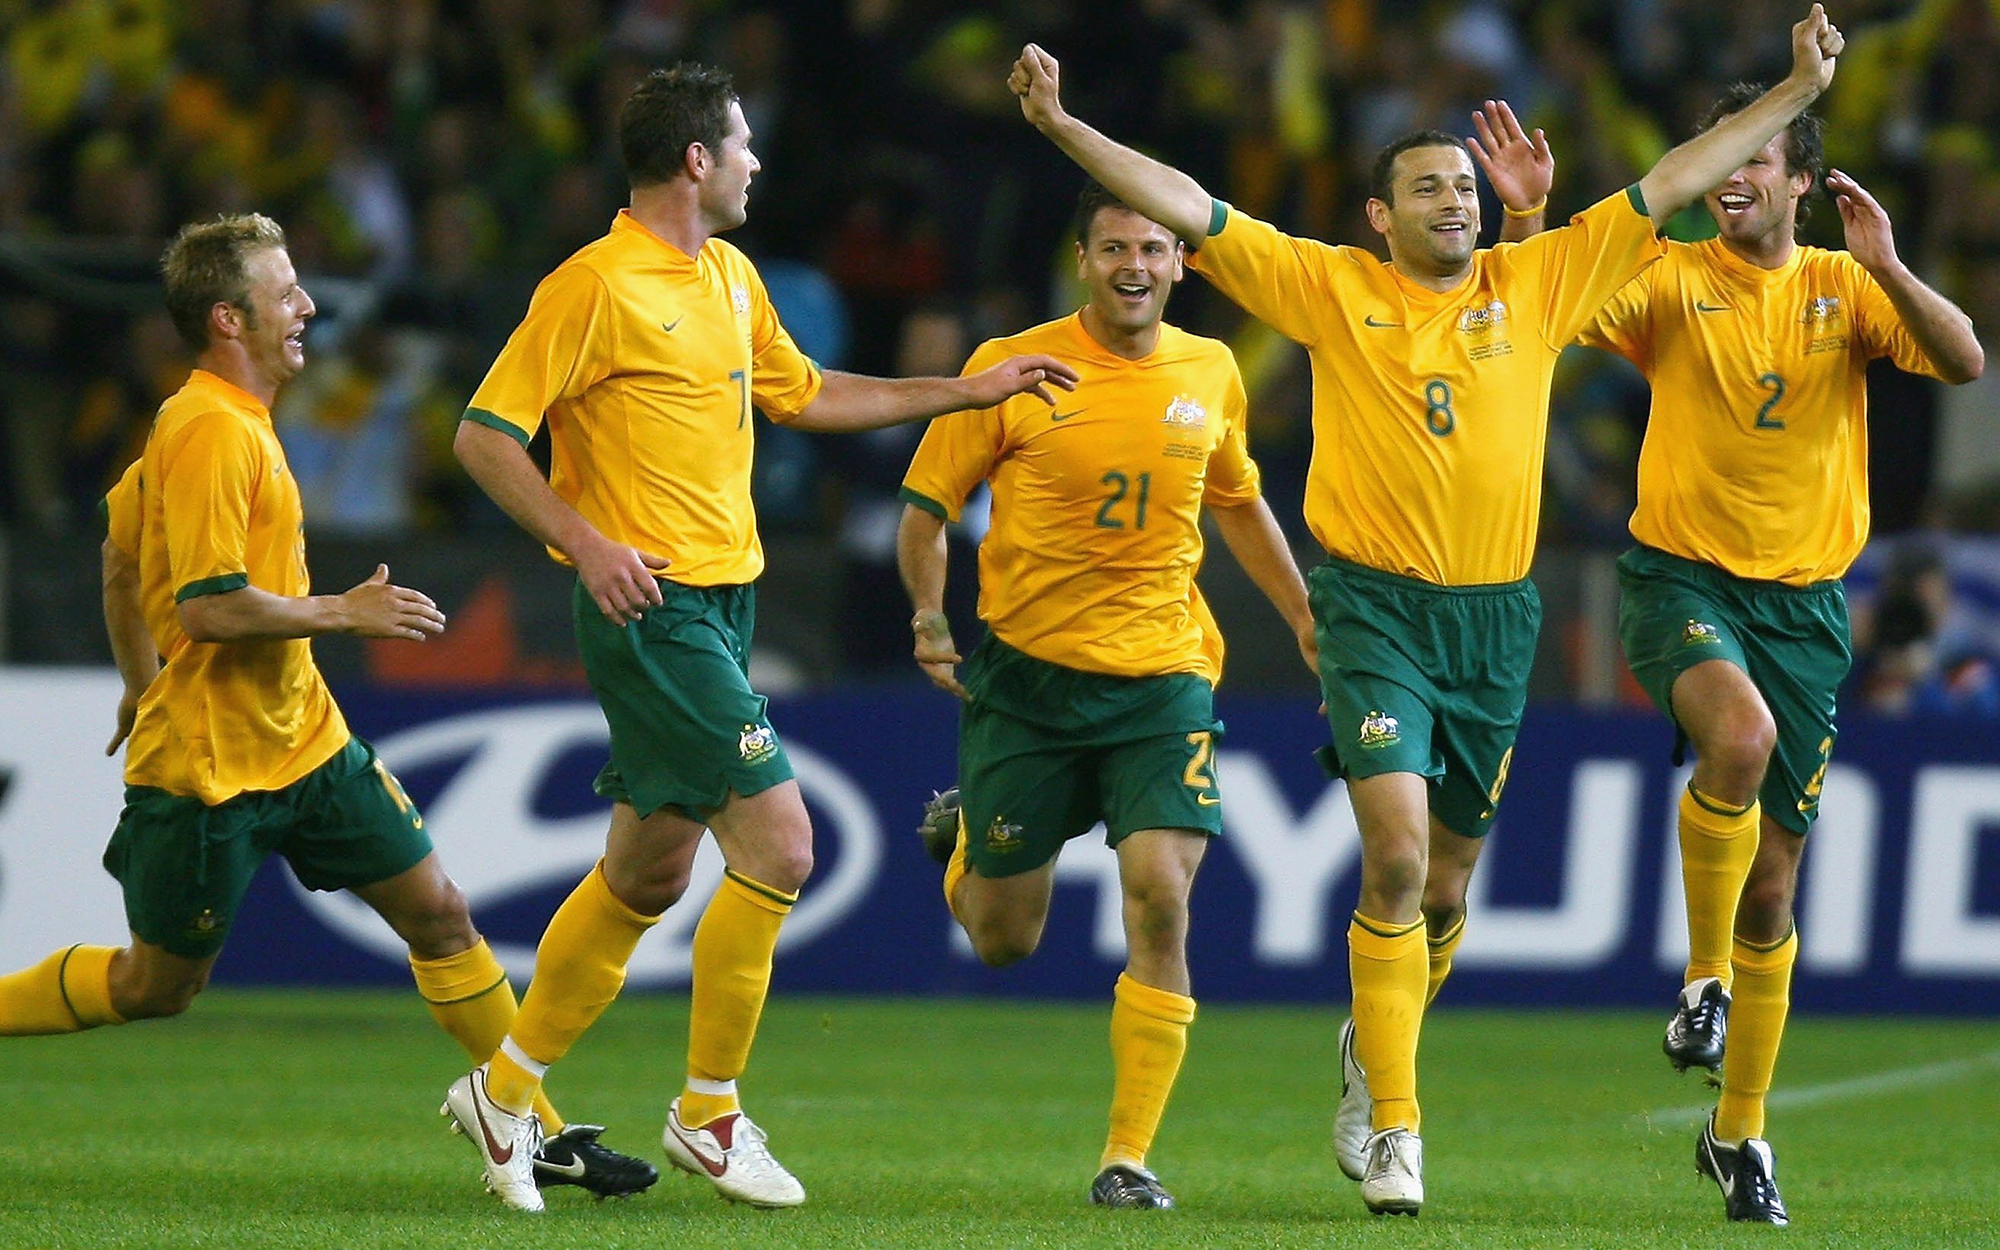 Top 5 highest attendances for Socceroos home matches